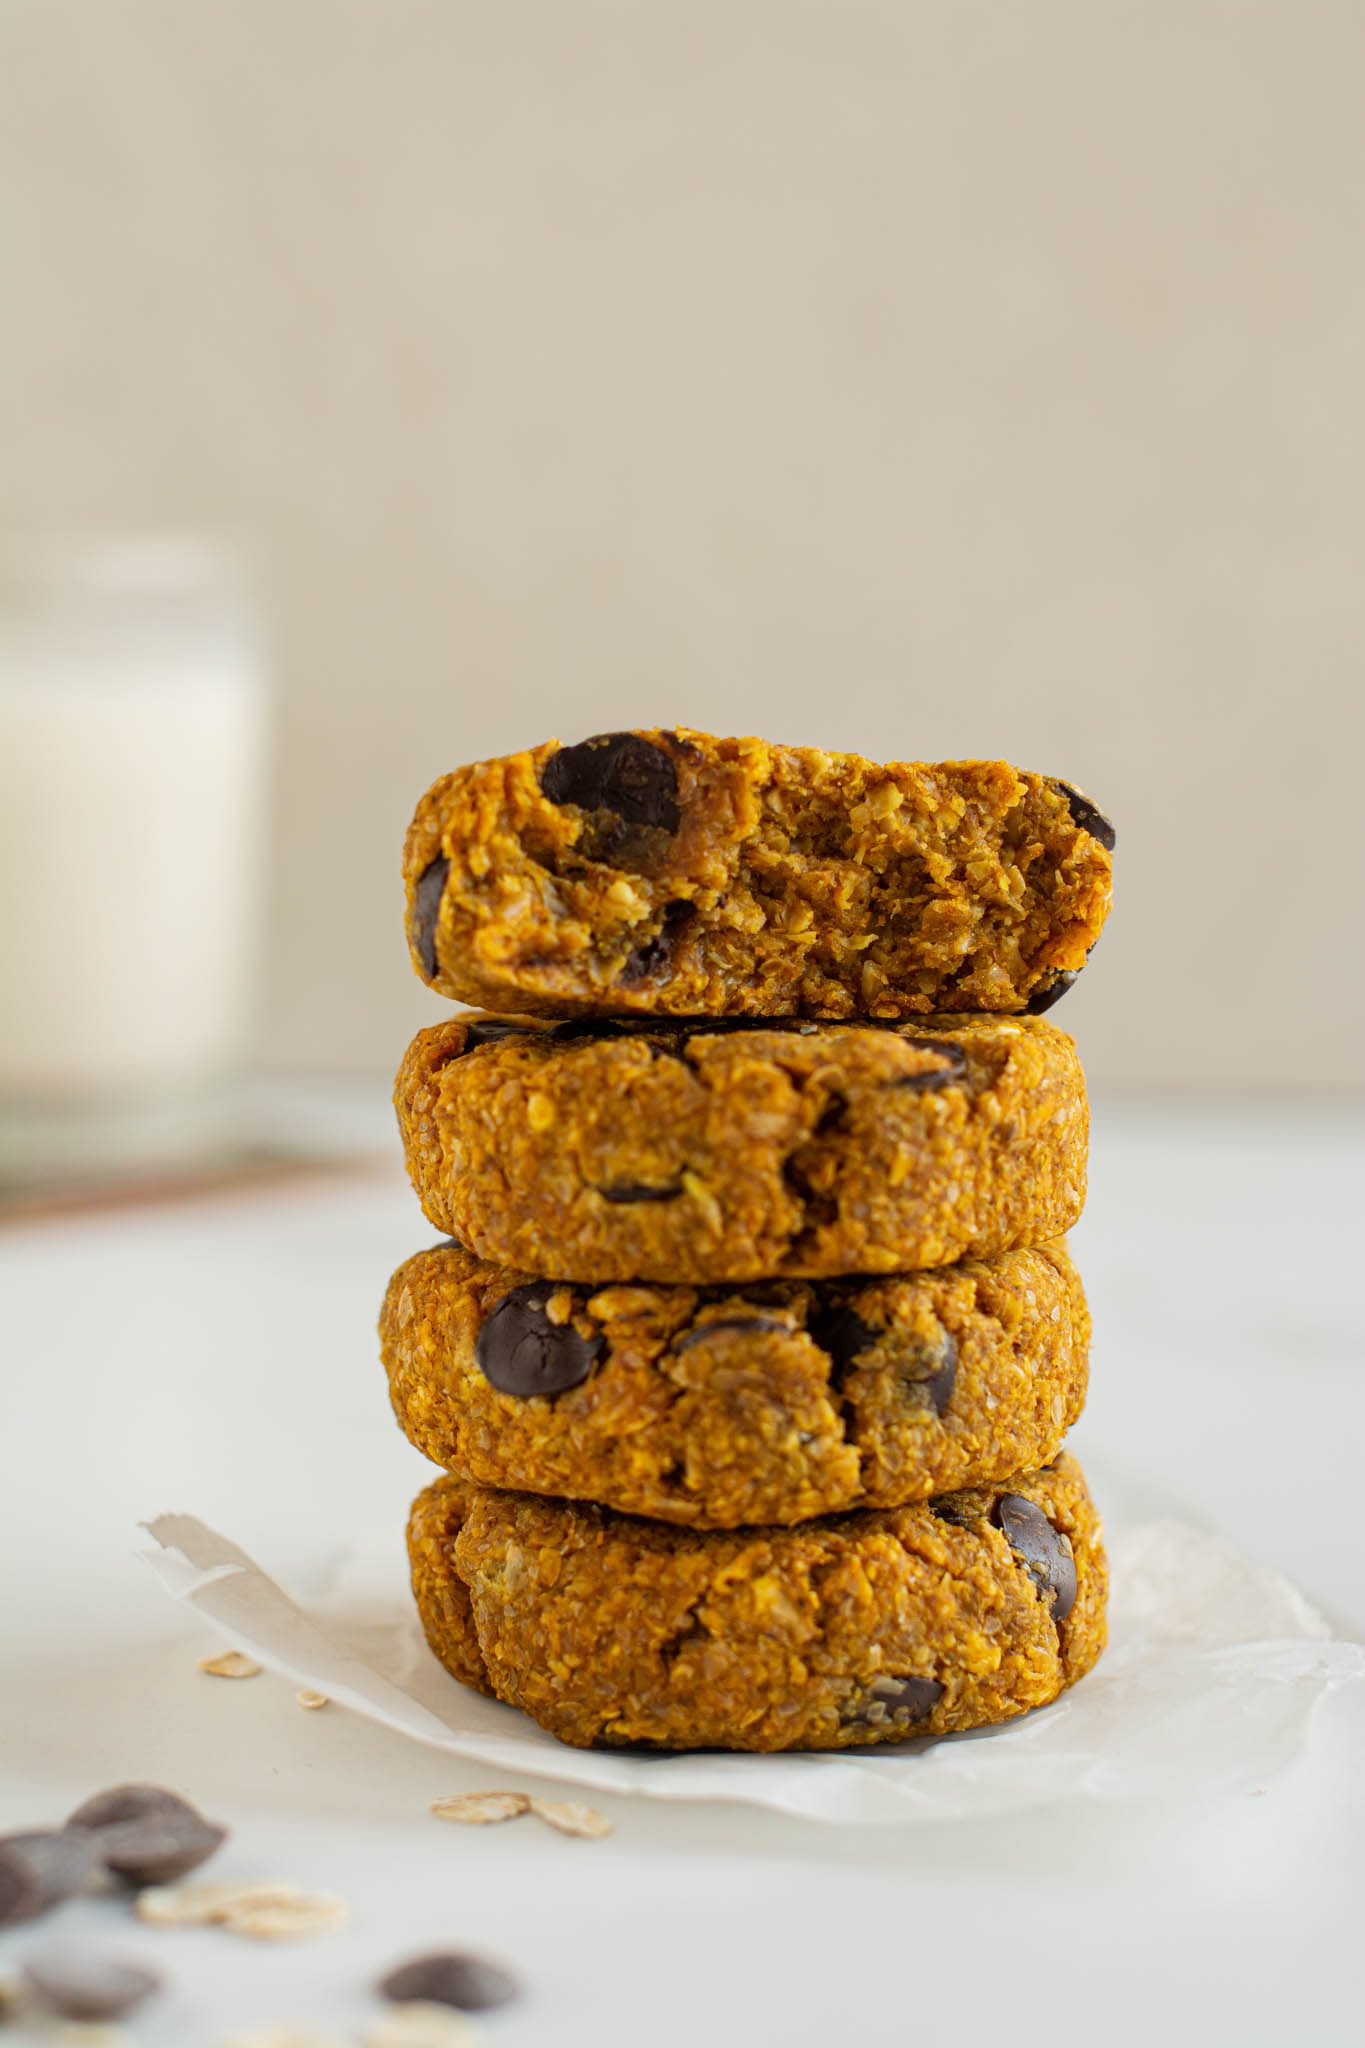 Learn how to make easy vegan pumpkin chocolate chip cookies that are extra fibrous and super satiating. They are excellent with a cup of tea or coffee for breakfast, snack, or as a healthy dessert.